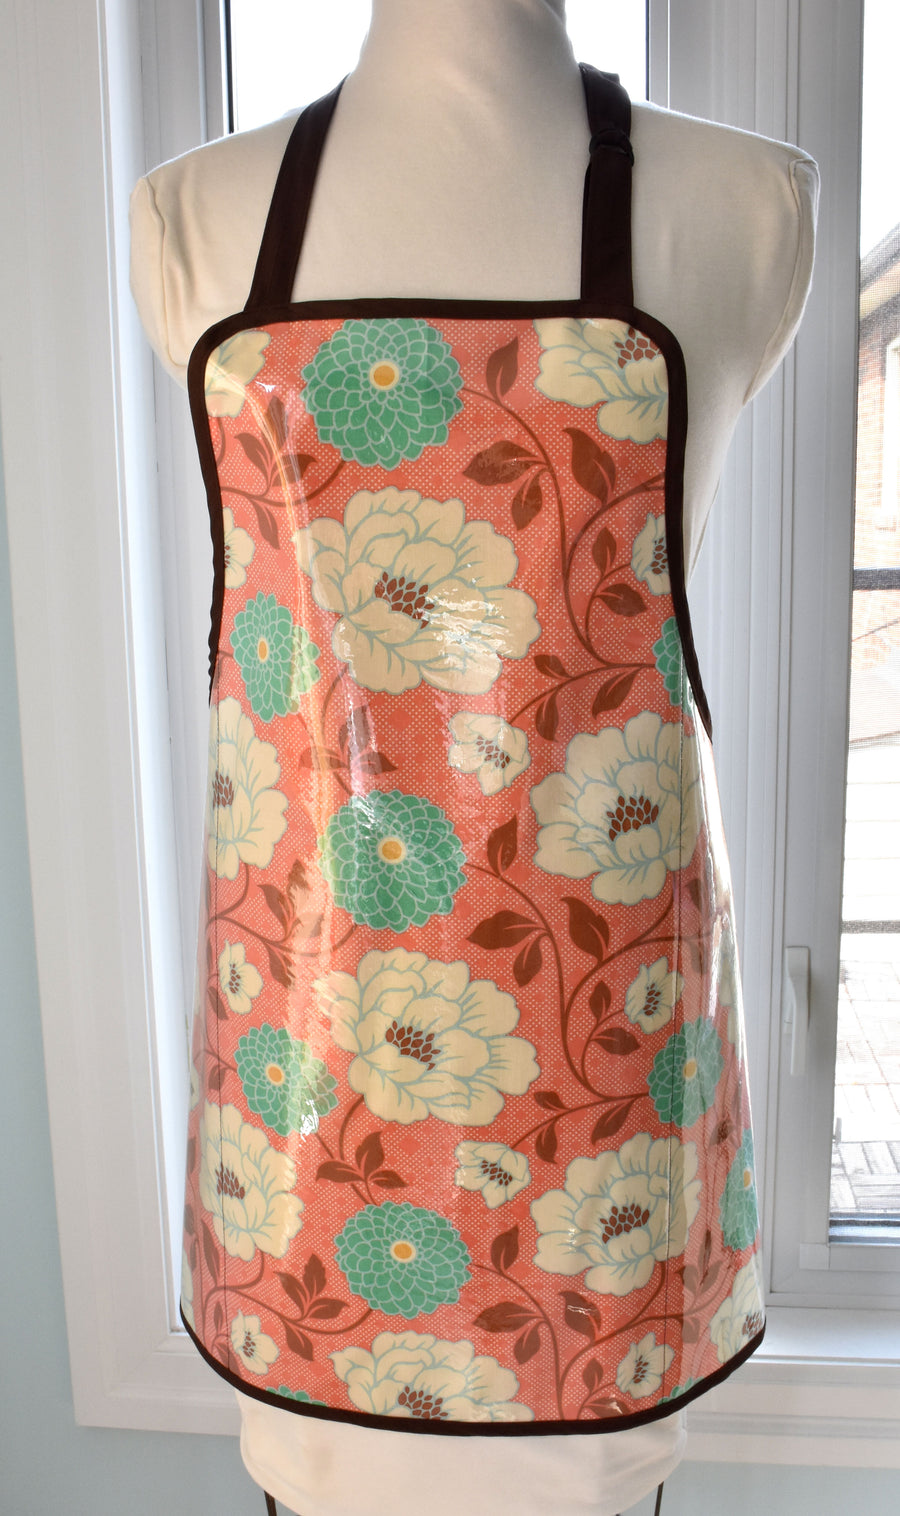 Waterproof full apron in coral dahlia floral print cotton with vinyl covering